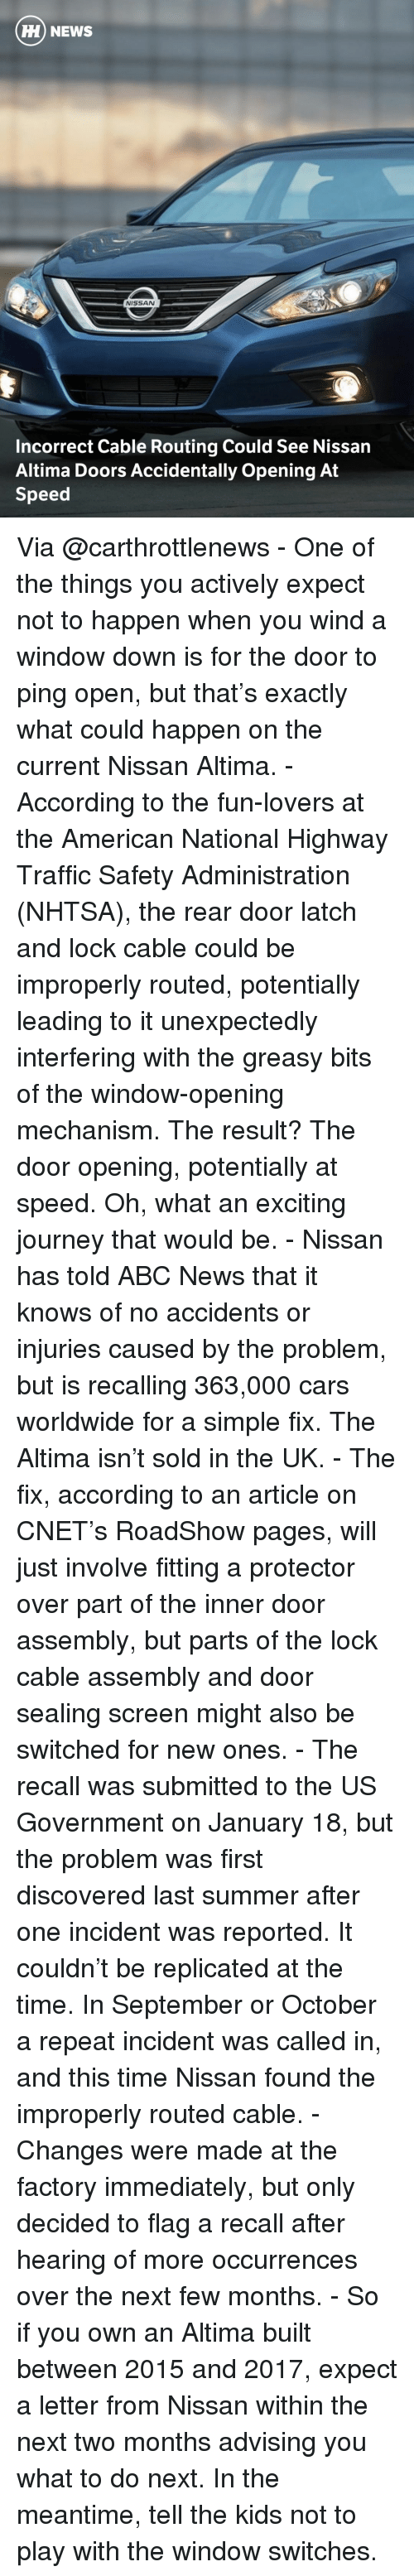 Memes, Abc News, and Cnet: HH NEWS  NISSAN  Incorrect Cable Routing Could See Nissan  Altima Doors Accidentally opening At  Speed Via @carthrottlenews - One of the things you actively expect not to happen when you wind a window down is for the door to ping open, but that's exactly what could happen on the current Nissan Altima. - According to the fun-lovers at the American National Highway Traffic Safety Administration (NHTSA), the rear door latch and lock cable could be improperly routed, potentially leading to it unexpectedly interfering with the greasy bits of the window-opening mechanism. The result? The door opening, potentially at speed. Oh, what an exciting journey that would be. - Nissan has told ABC News that it knows of no accidents or injuries caused by the problem, but is recalling 363,000 cars worldwide for a simple fix. The Altima isn't sold in the UK. - The fix, according to an article on CNET's RoadShow pages, will just involve fitting a protector over part of the inner door assembly, but parts of the lock cable assembly and door sealing screen might also be switched for new ones. - The recall was submitted to the US Government on January 18, but the problem was first discovered last summer after one incident was reported. It couldn't be replicated at the time. In September or October a repeat incident was called in, and this time Nissan found the improperly routed cable. - Changes were made at the factory immediately, but only decided to flag a recall after hearing of more occurrences over the next few months. - So if you own an Altima built between 2015 and 2017, expect a letter from Nissan within the next two months advising you what to do next. In the meantime, tell the kids not to play with the window switches.